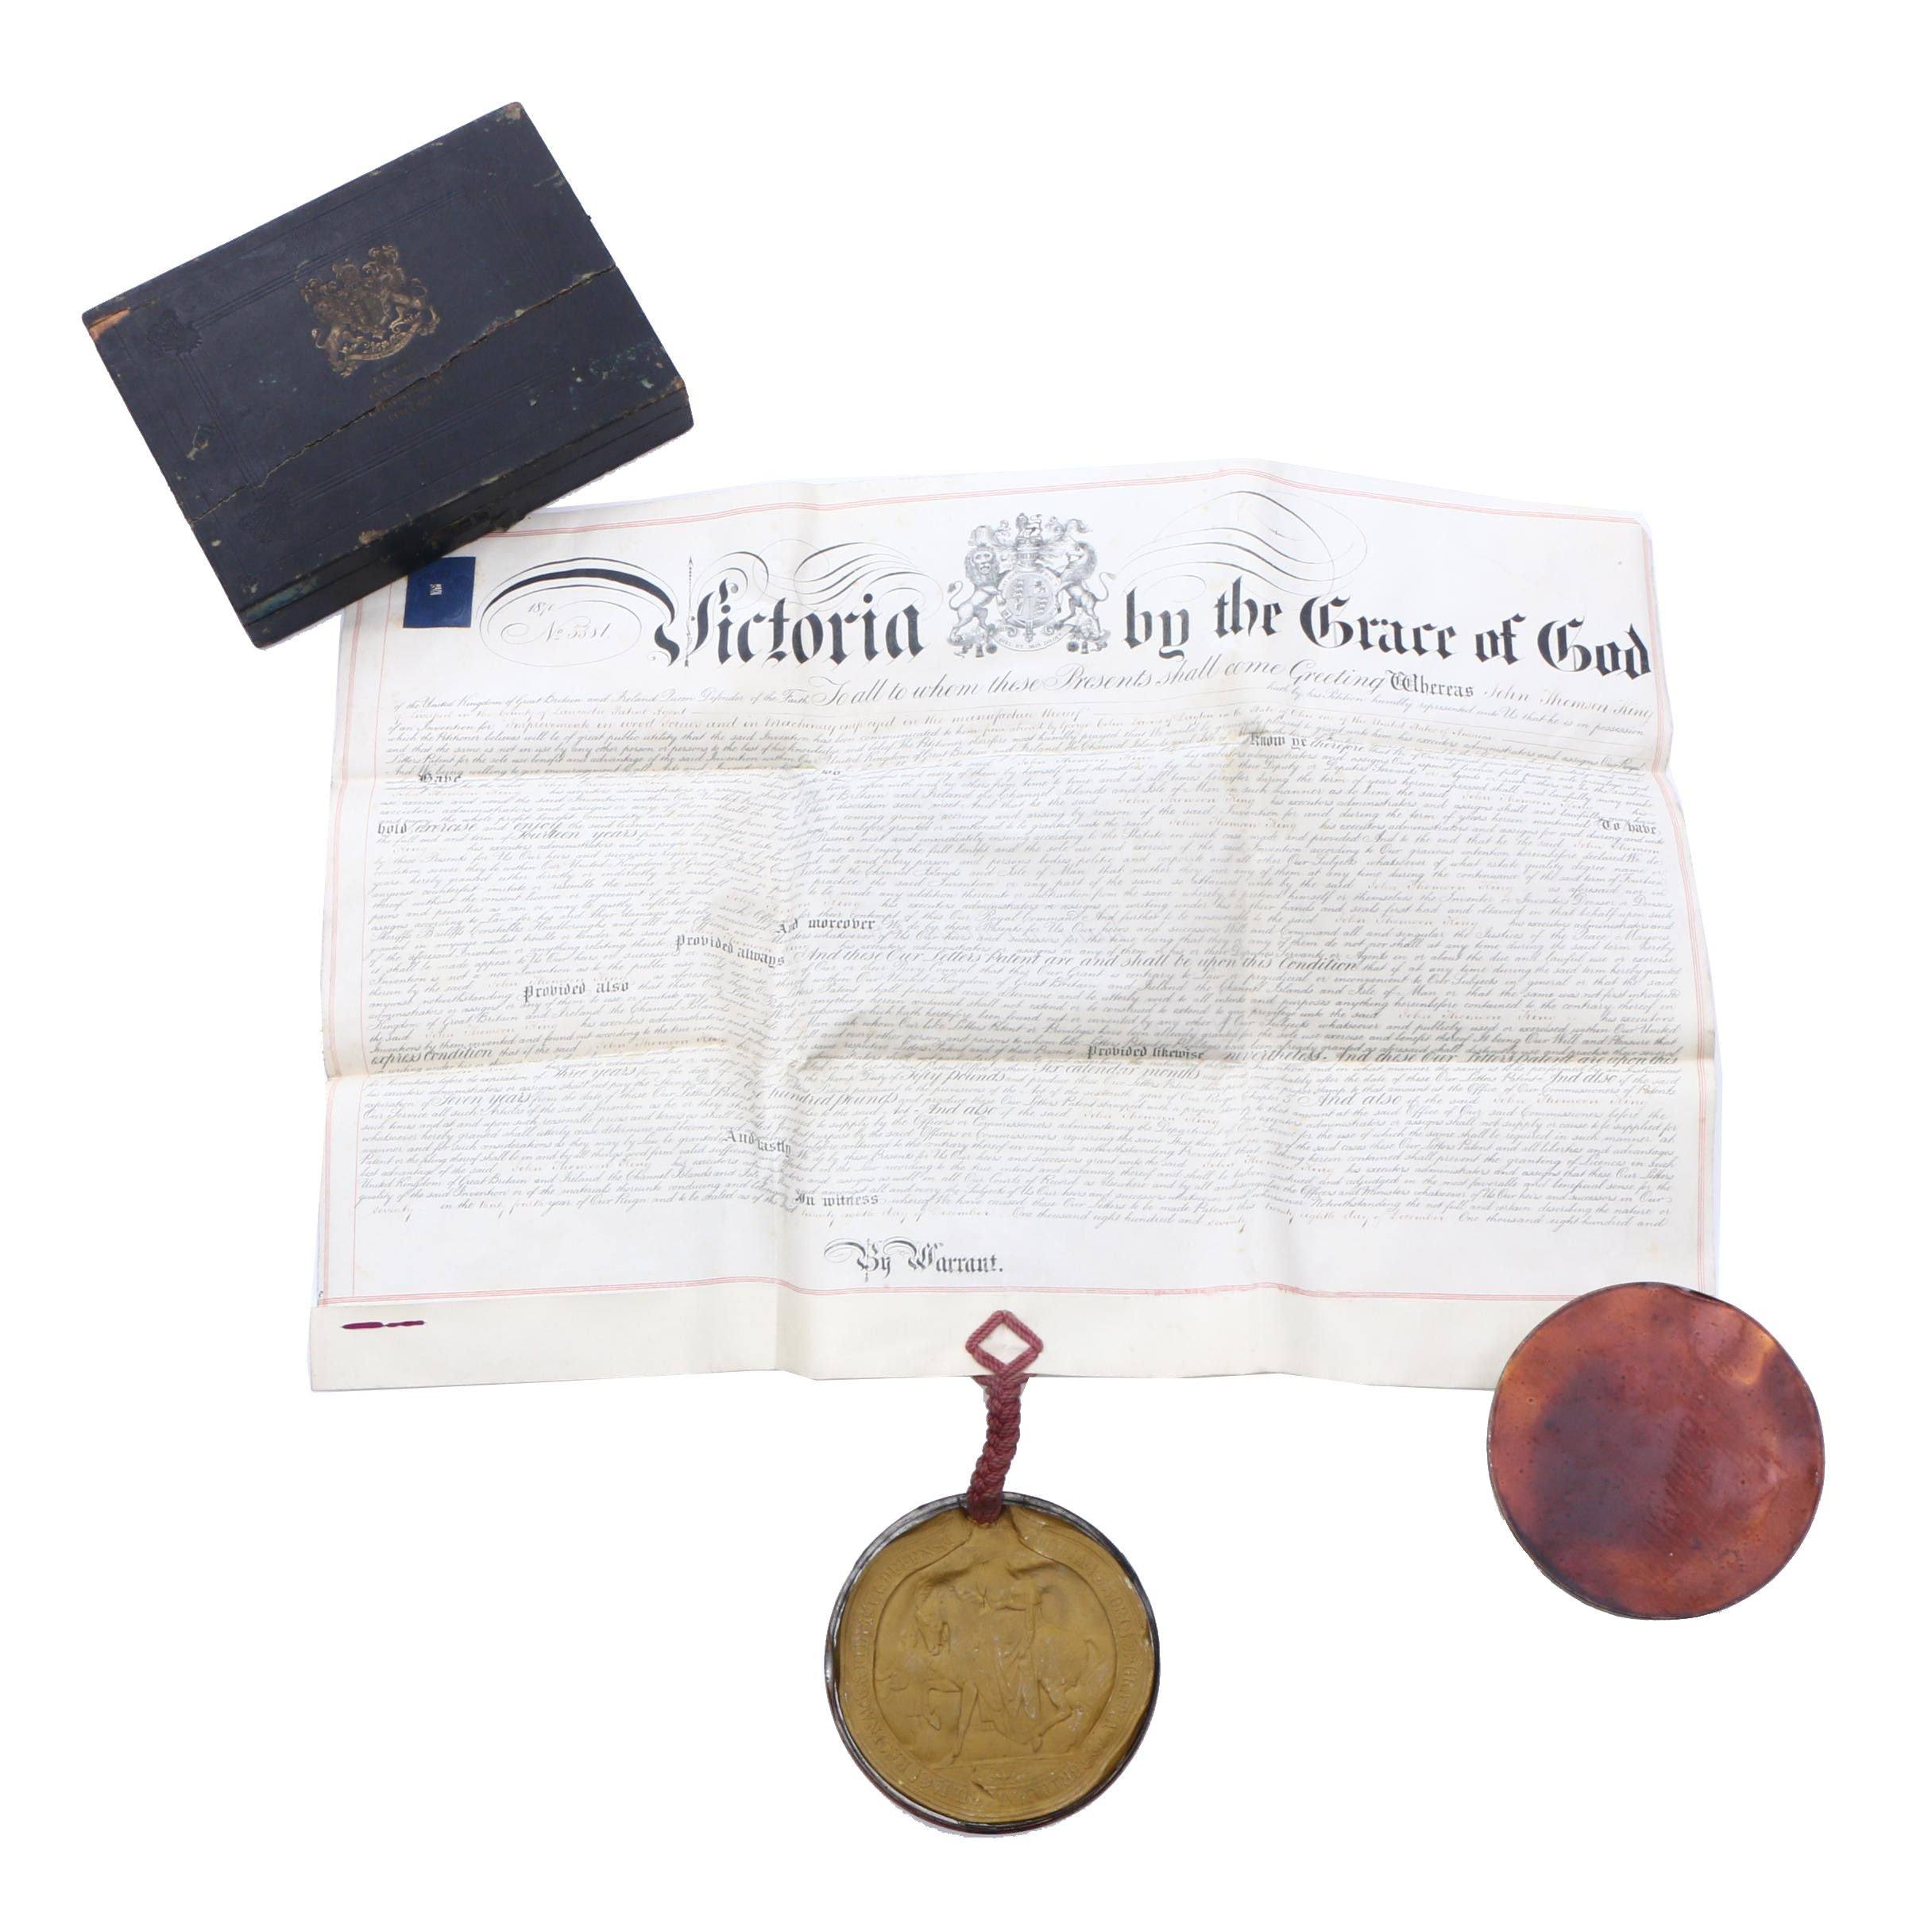 1870 Victorian Patent Document with Large Wax Seal